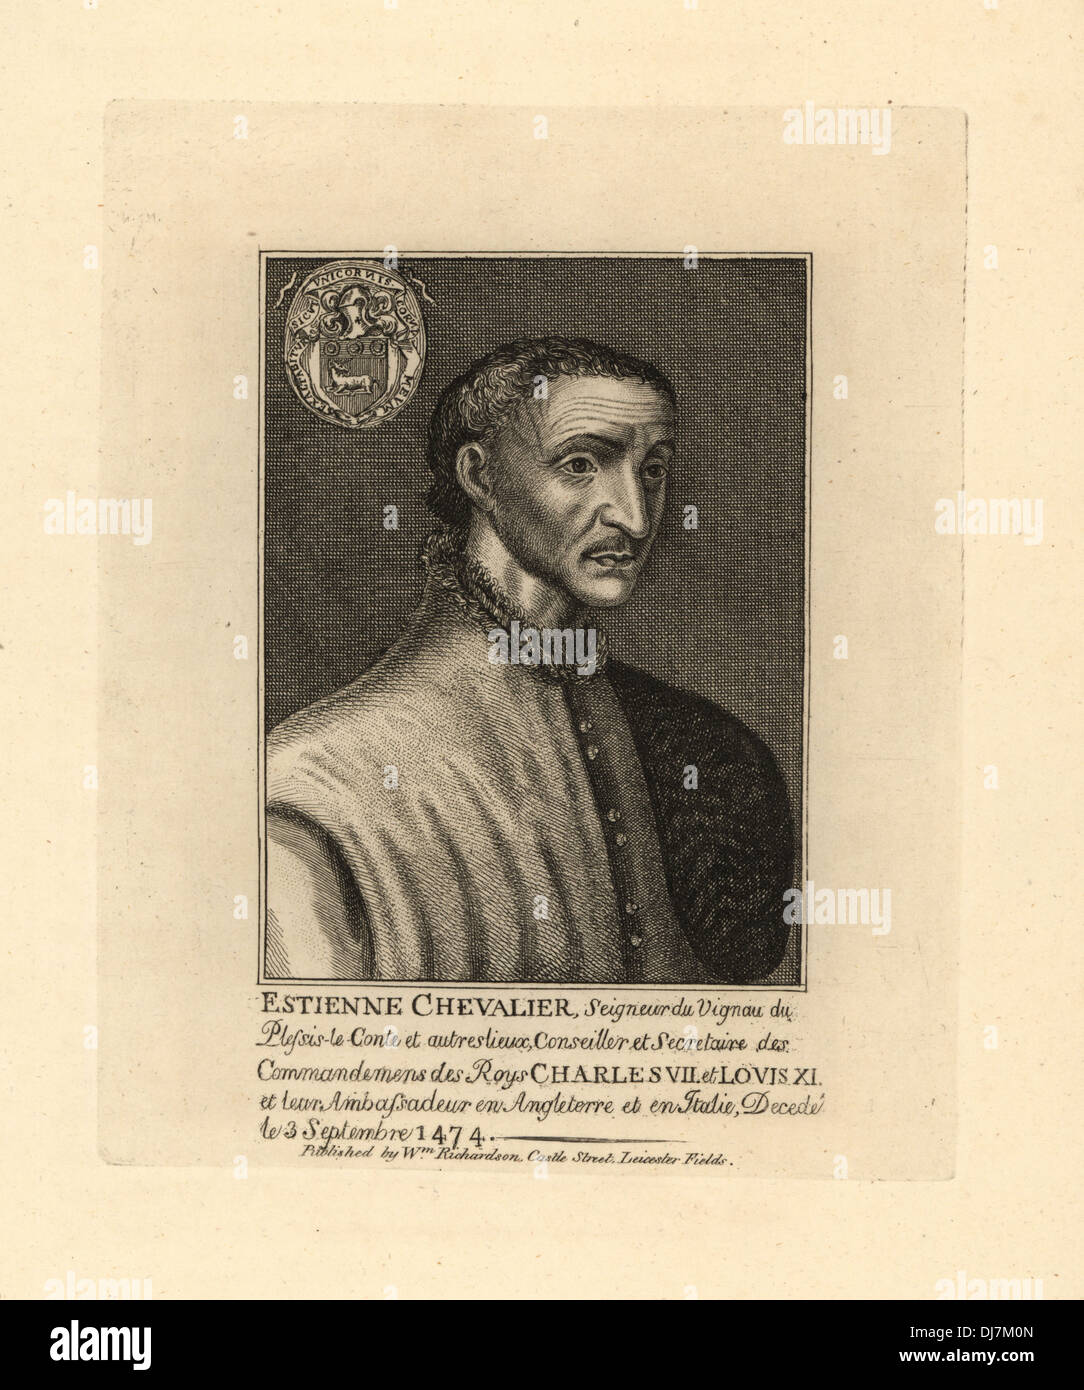 Chevalier Estienne, French Ambassador to King Charles VII and King Louis XI in England and Italy, died 1474. - Stock Image